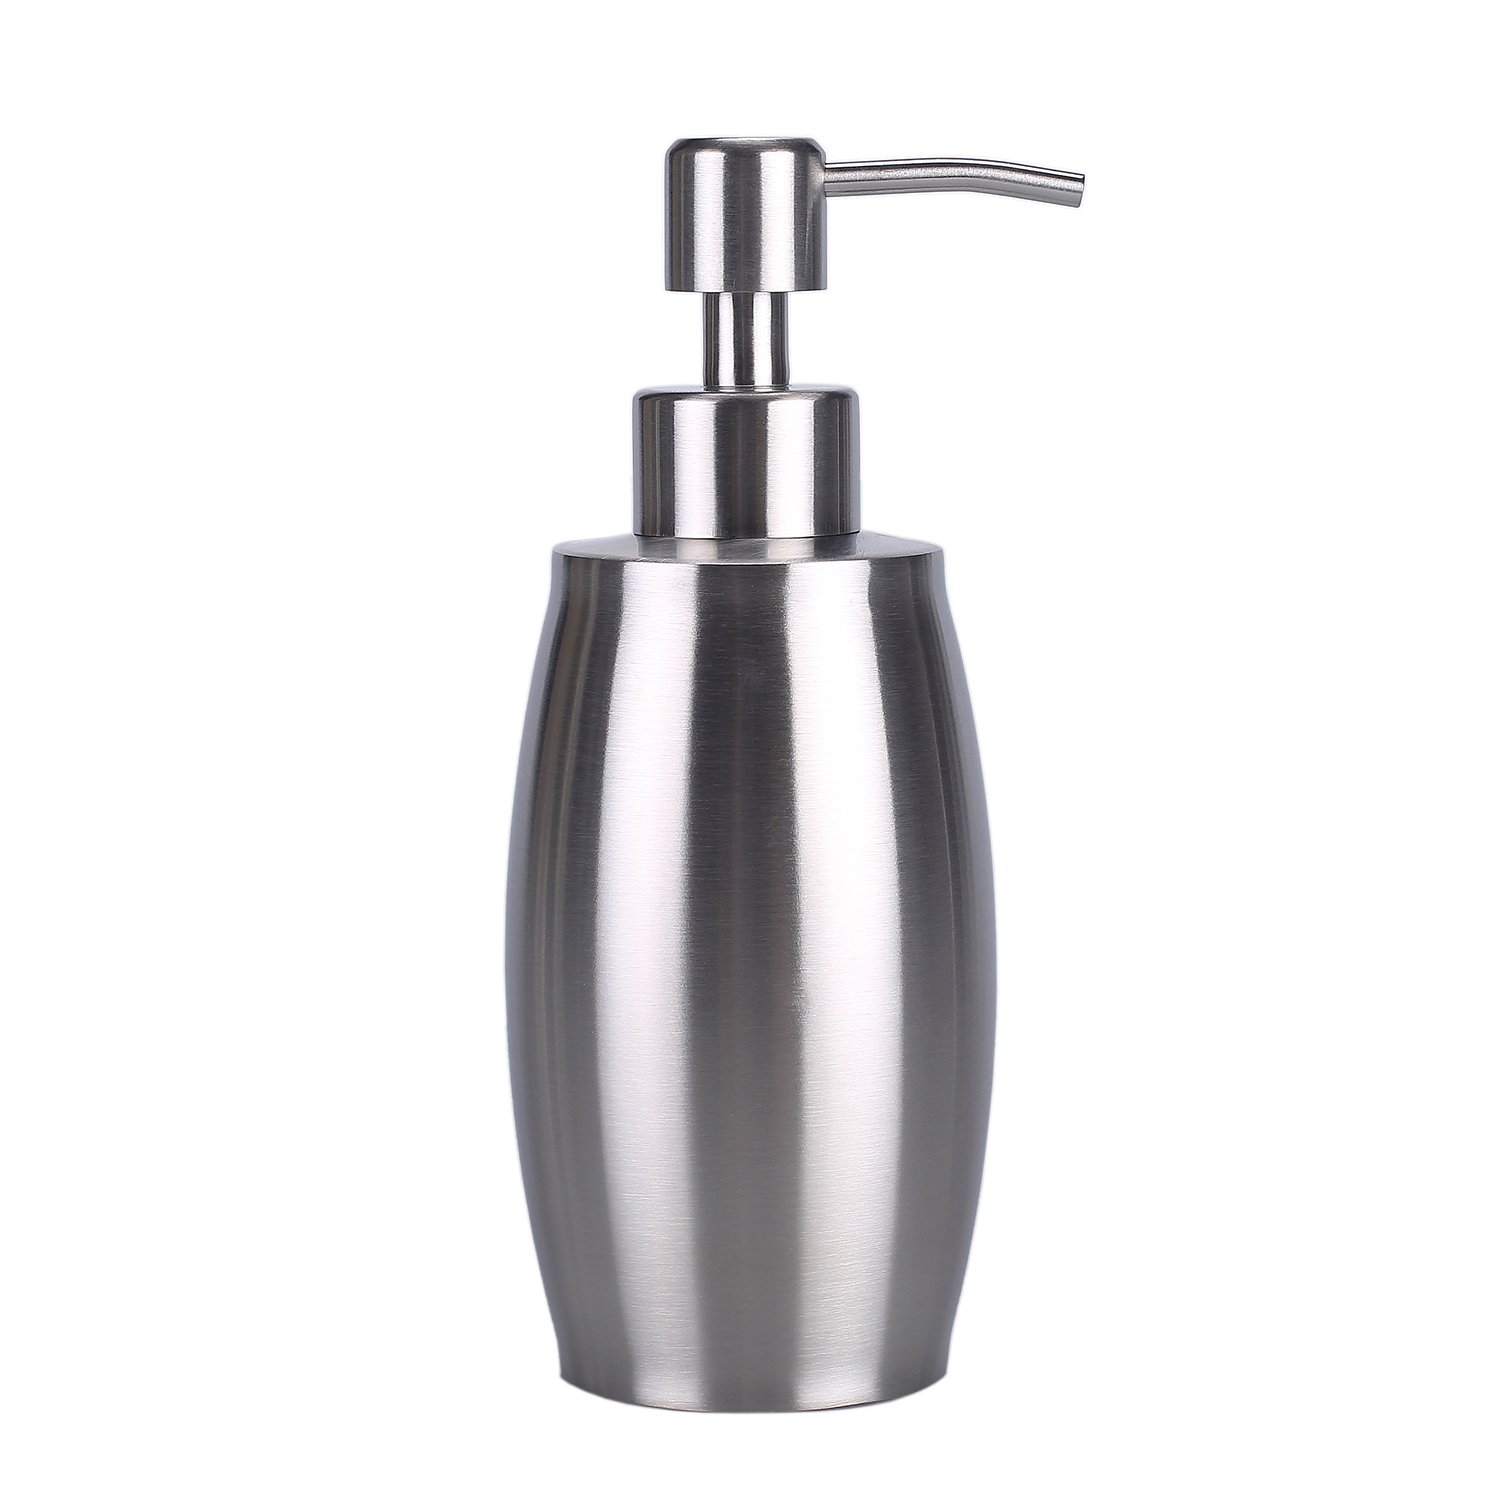 amazoncom soap dispenser arktek premium  stainless steel soap andliquid dispenser for kitchen and bathroom ( ml) home  kitchen. amazoncom soap dispenser arktek premium  stainless steel